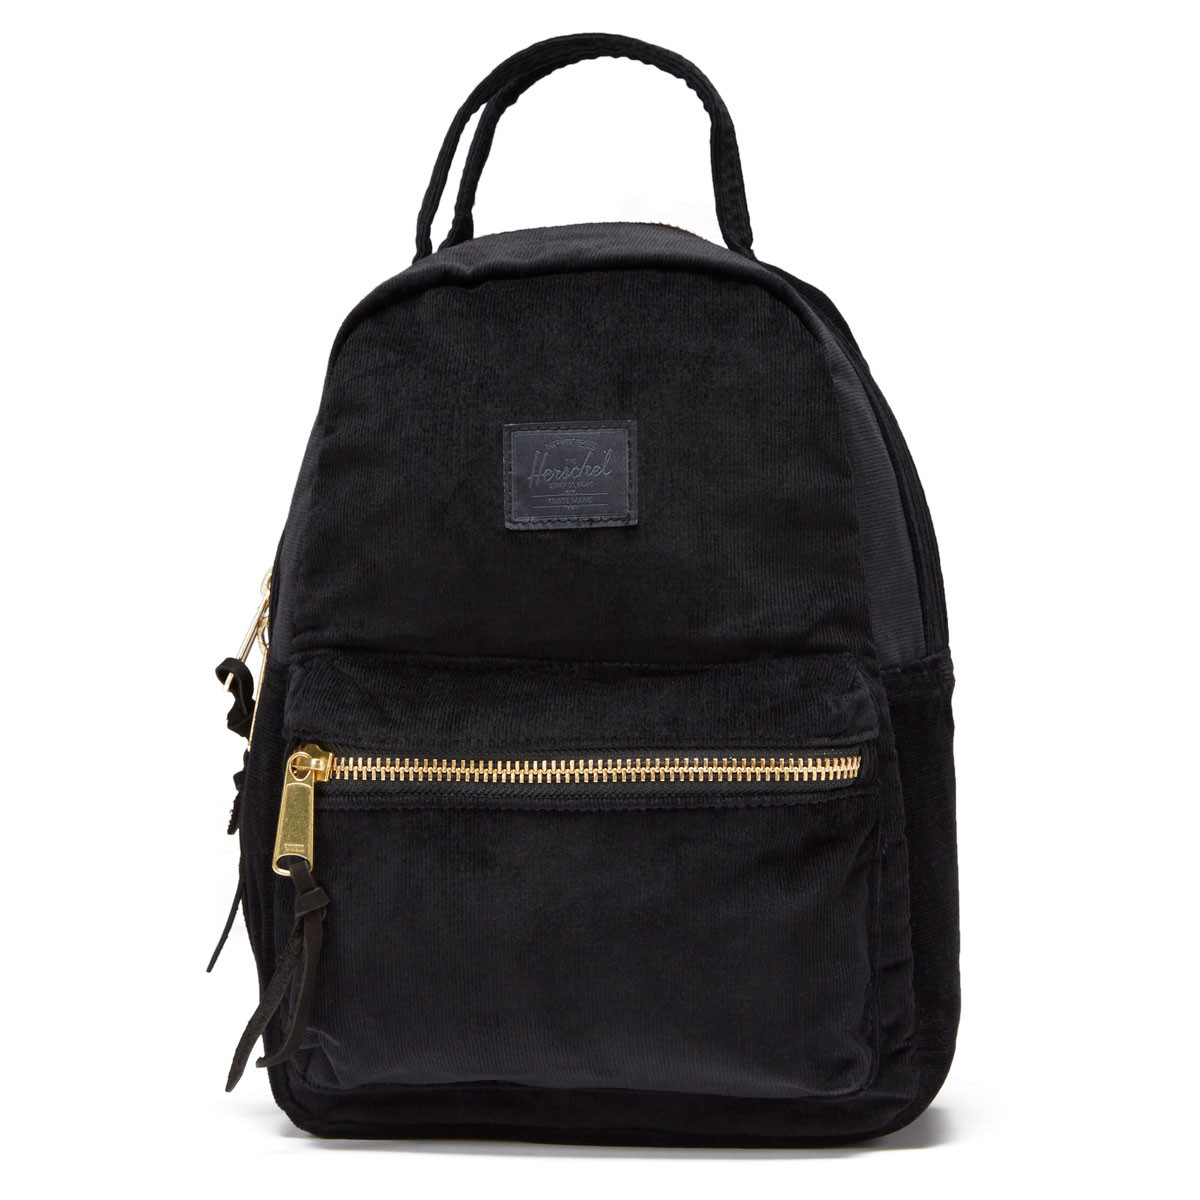 cdd4cc9c1a7 Herschel Supply Nova Mini Backpack - Corduroy Black